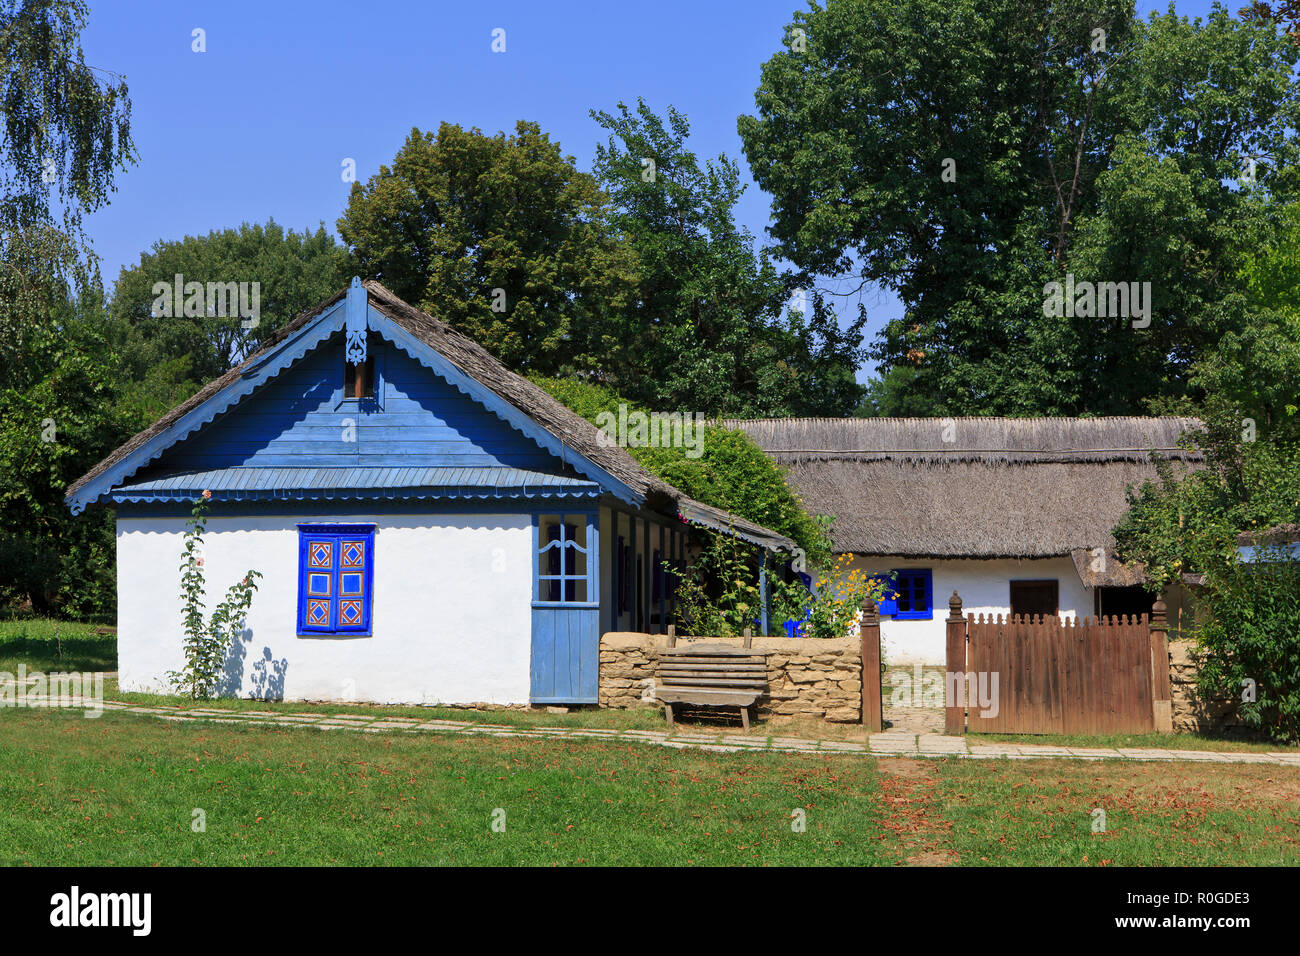 A beautiful traditional farmhouse at the Dimitrie Gusti National Village Museum in Bucharest, Romania - Stock Image